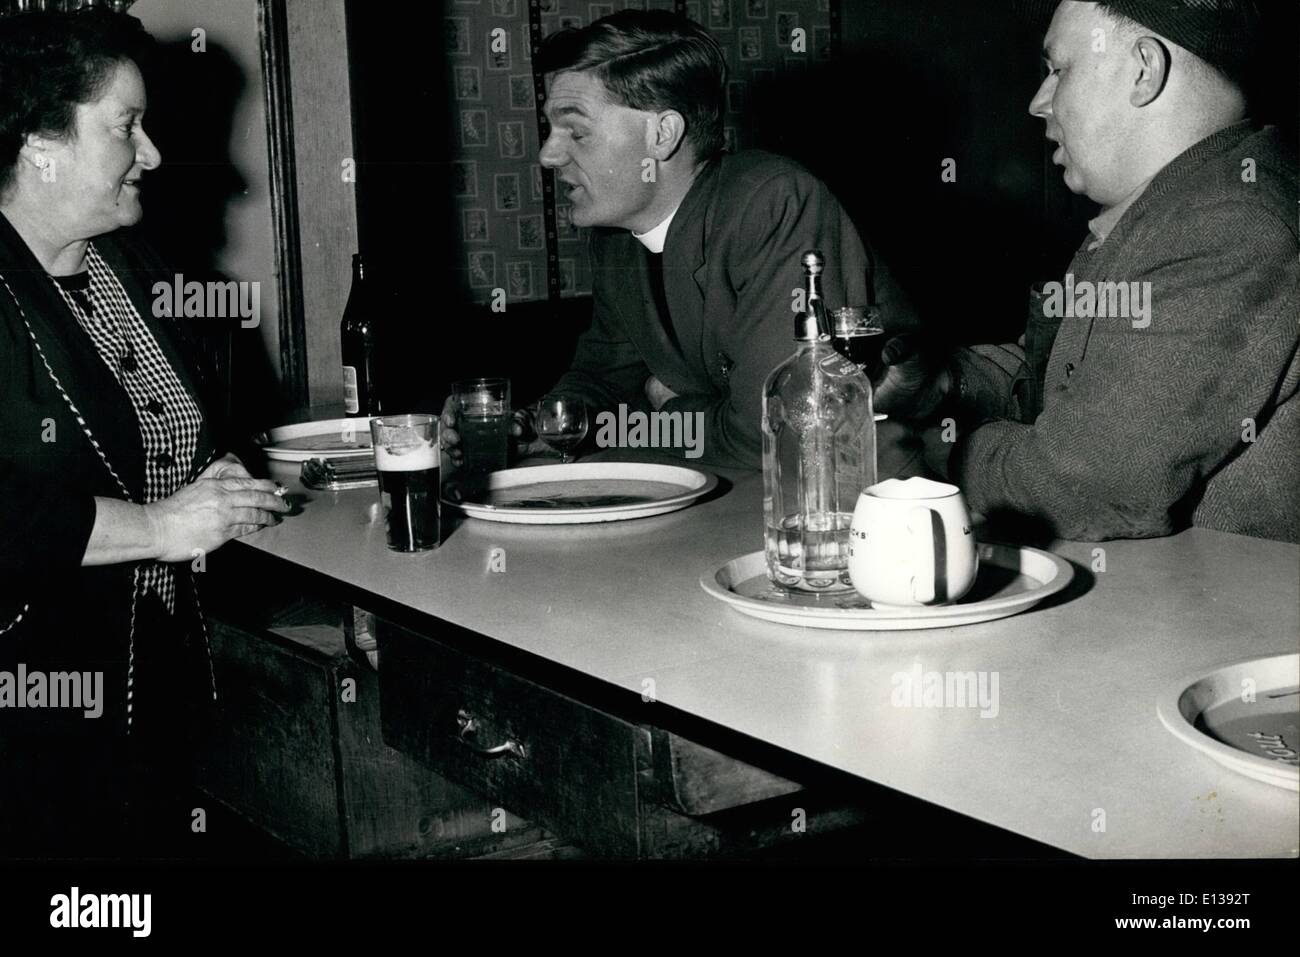 Feb. 29, 2012 - The Minister in the Local: A chat over the Bar. After one of his visits to miners at the coalface, The Rev. Cyril Blount calls in at The Forresters Arms and enjoys a drink and a snack and a chat with Grace Morris, the landlord! - Stock Image